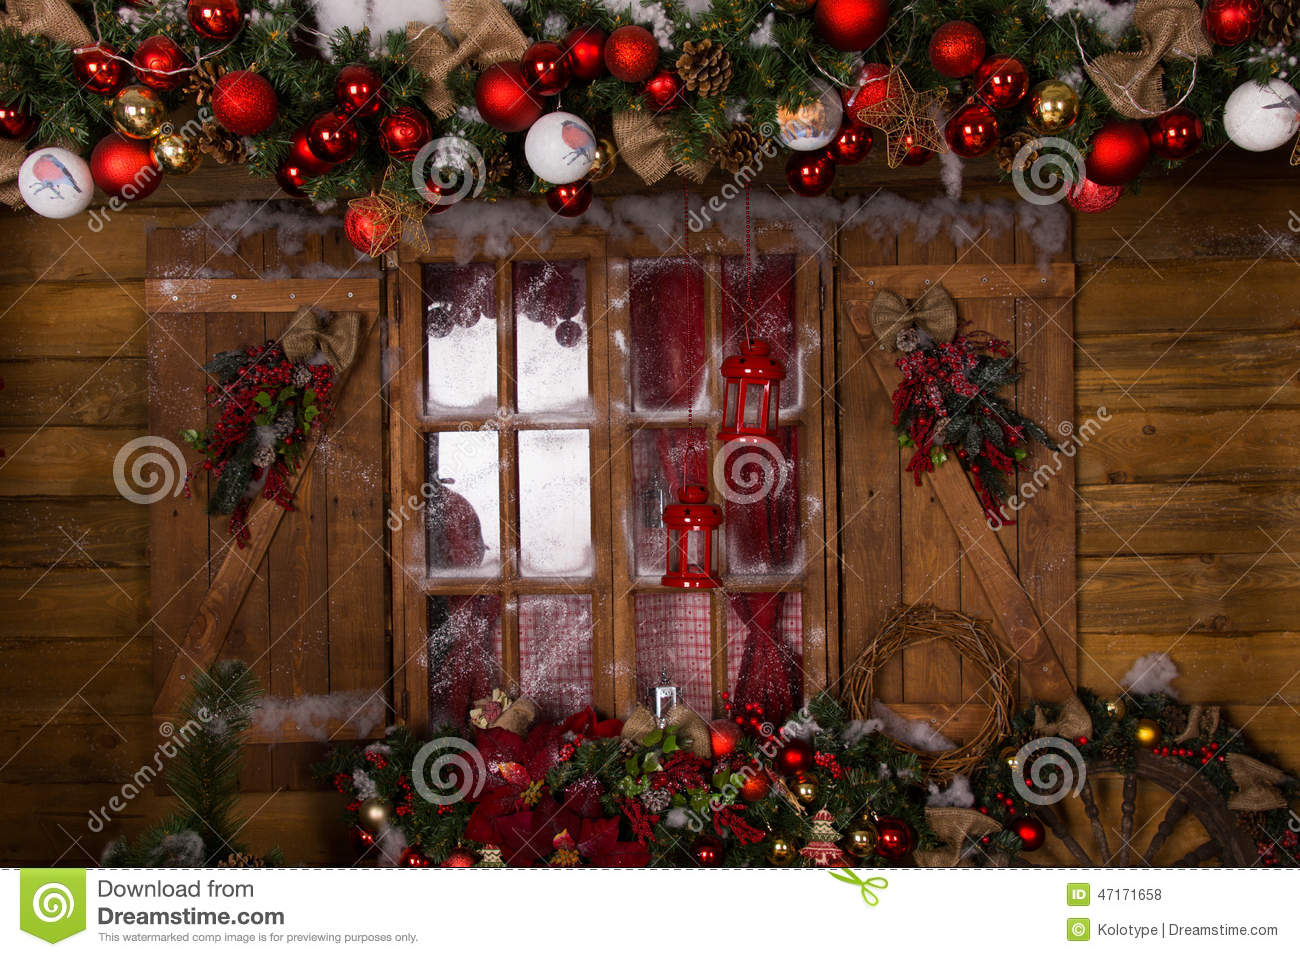 Rustic cabin christmas decorations - Christmas Decors At Glass Window With Wooden Frame Stock